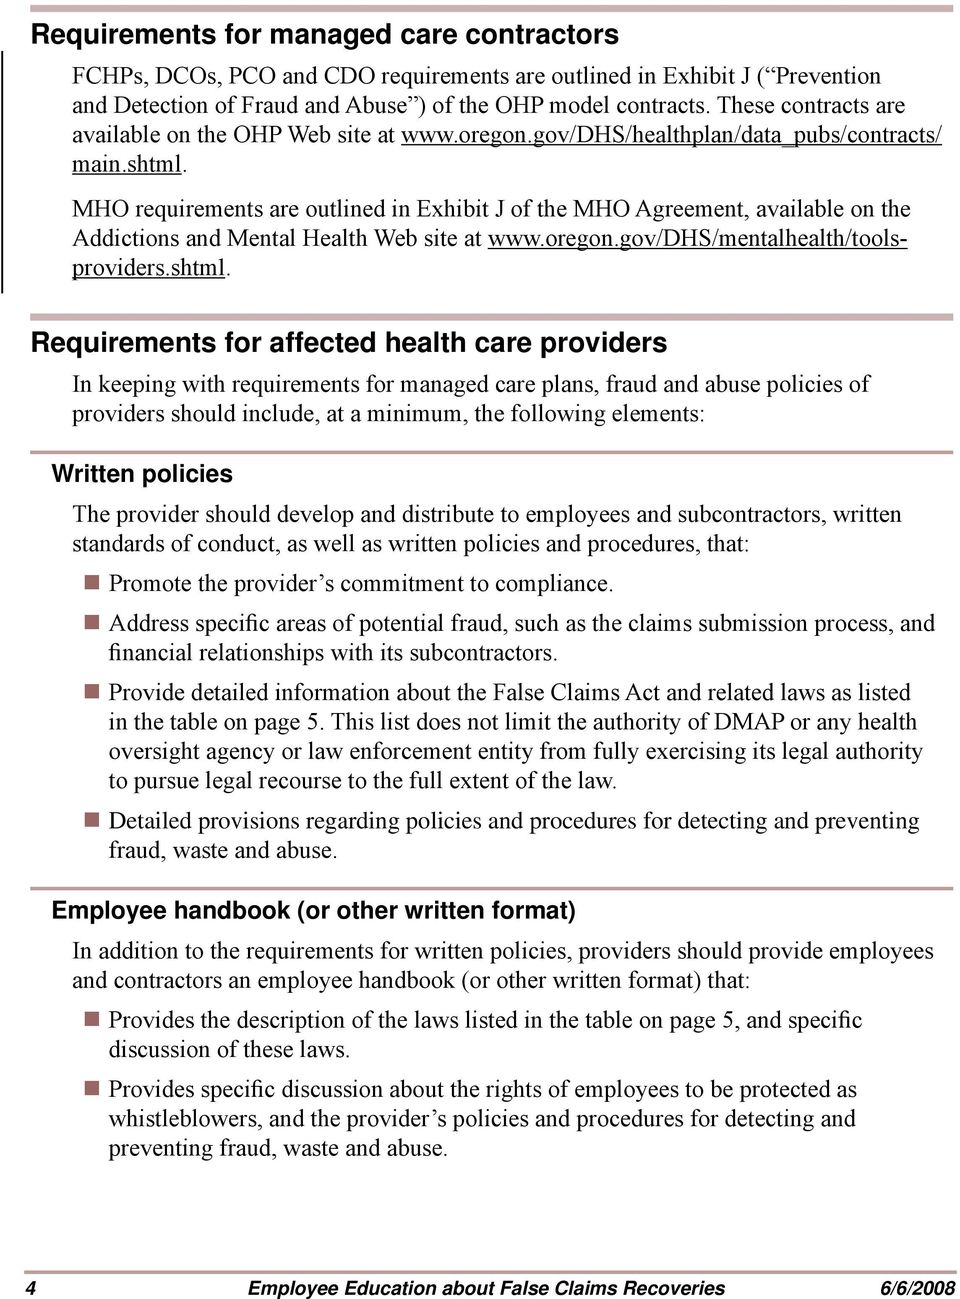 MHO requirements are outlined in Exhibit J of the MHO Agreement, available on the Addictions and Mental Health Web site at www.oregon.gov/dhs/mentalhealth/toolsproviders.shtml.